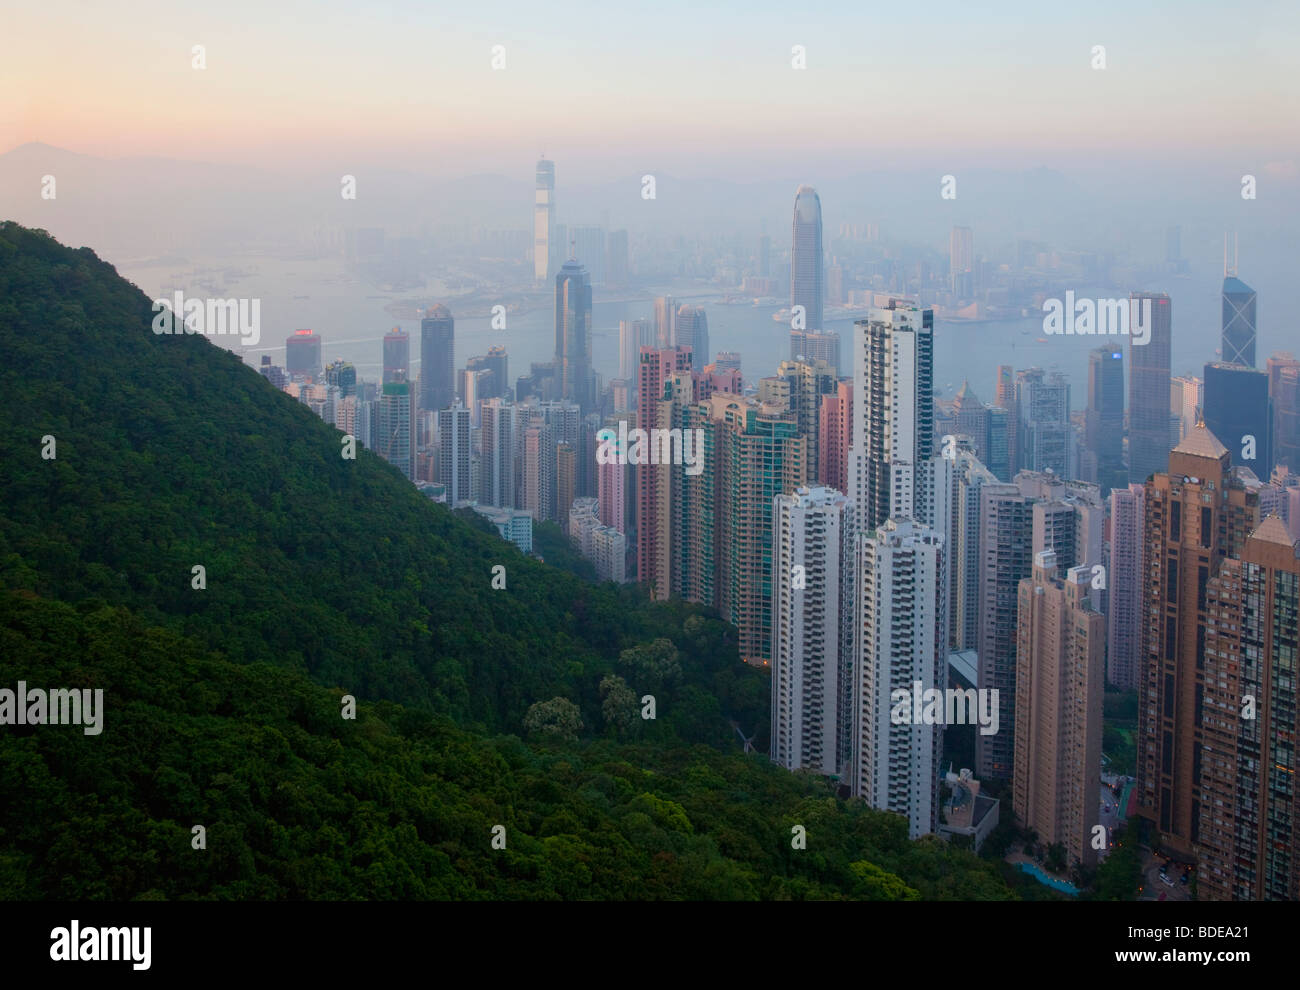 View from The Peak, Shan Teng, Hong Kong, China. Stock Photo